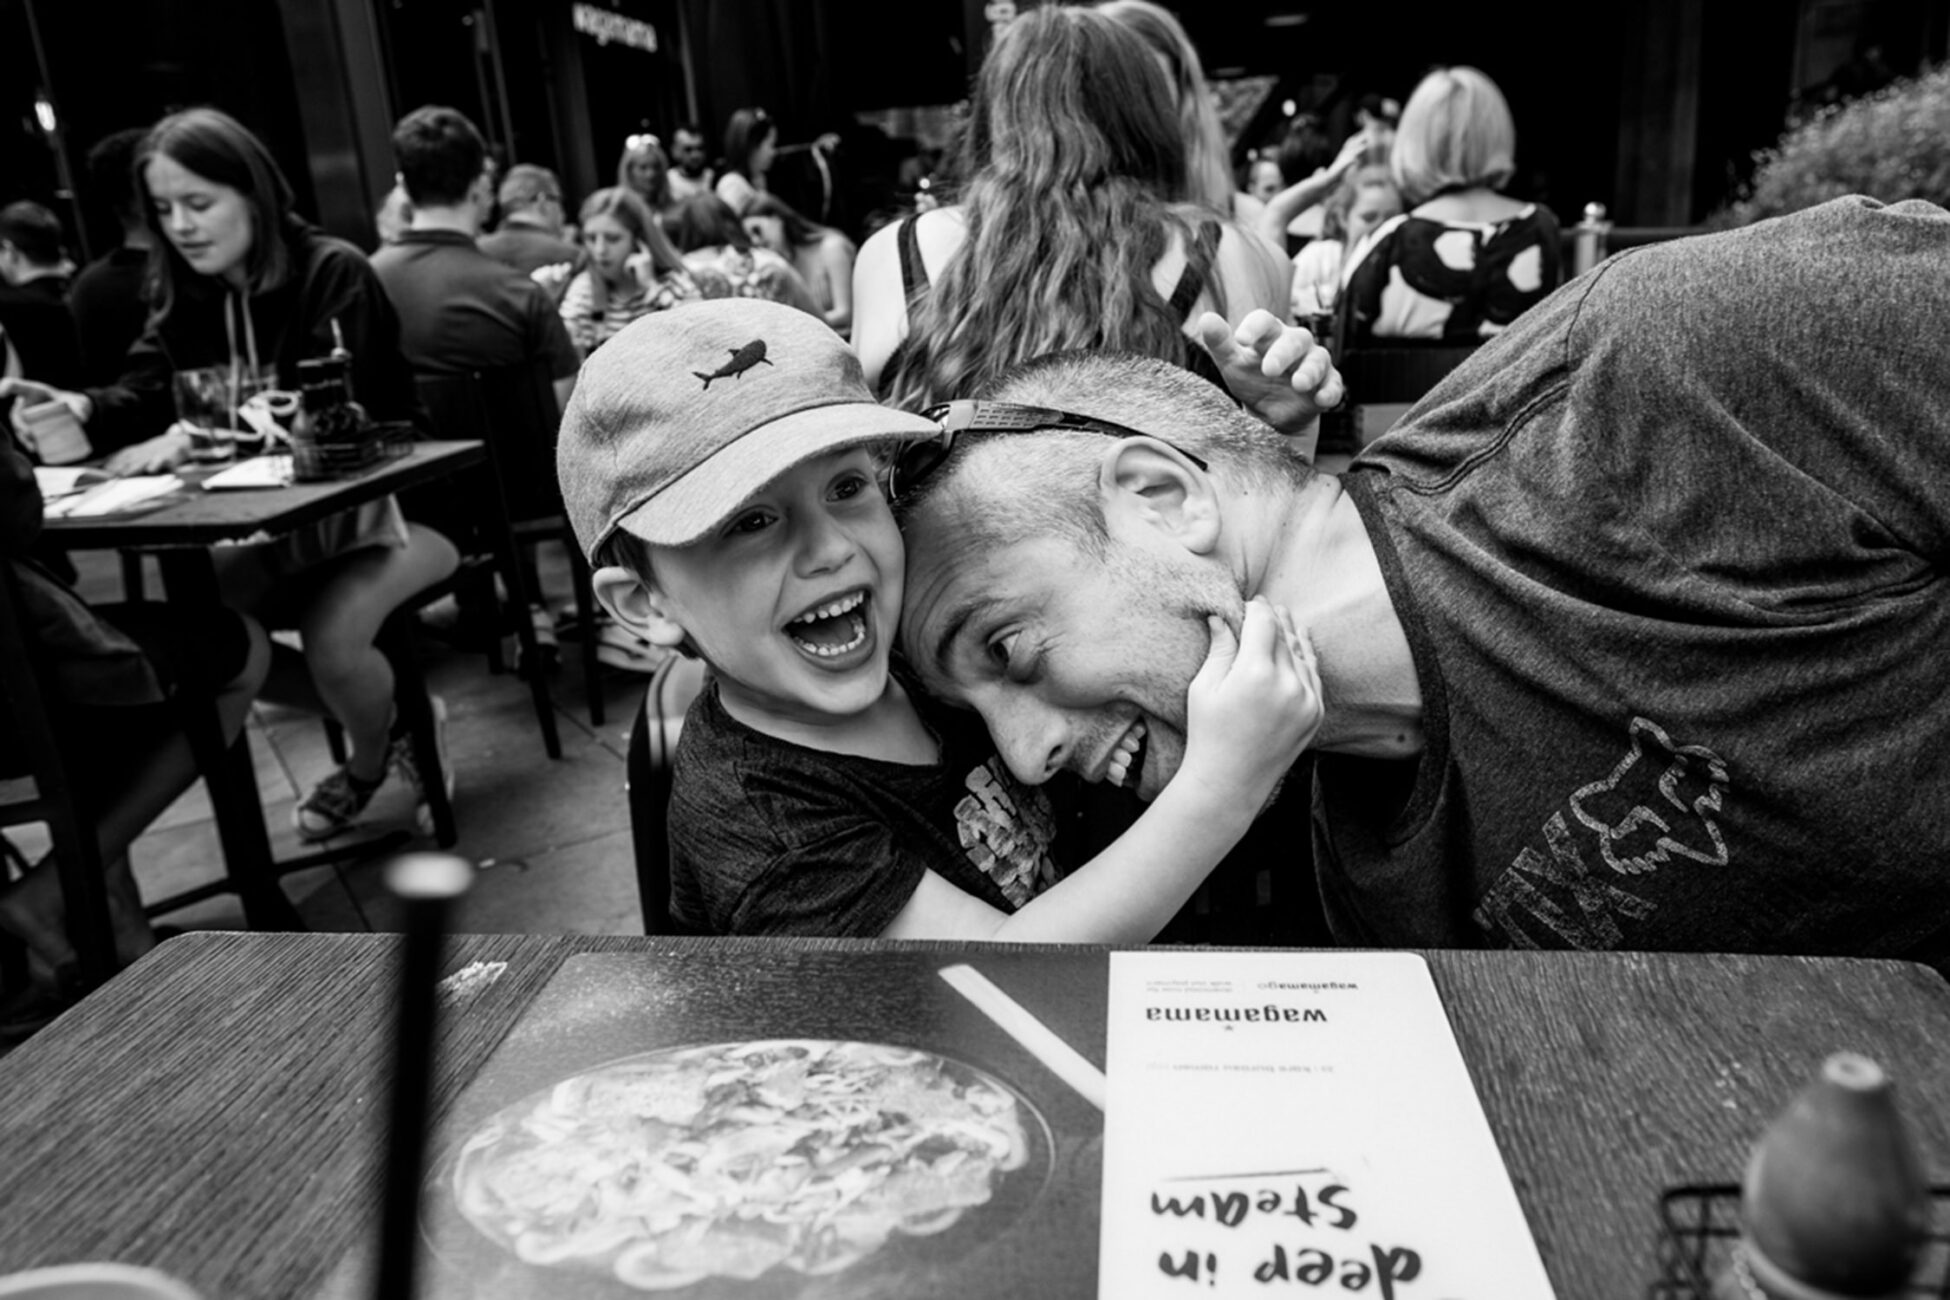 little boy pinches his dad's cheek during a family meal in town.